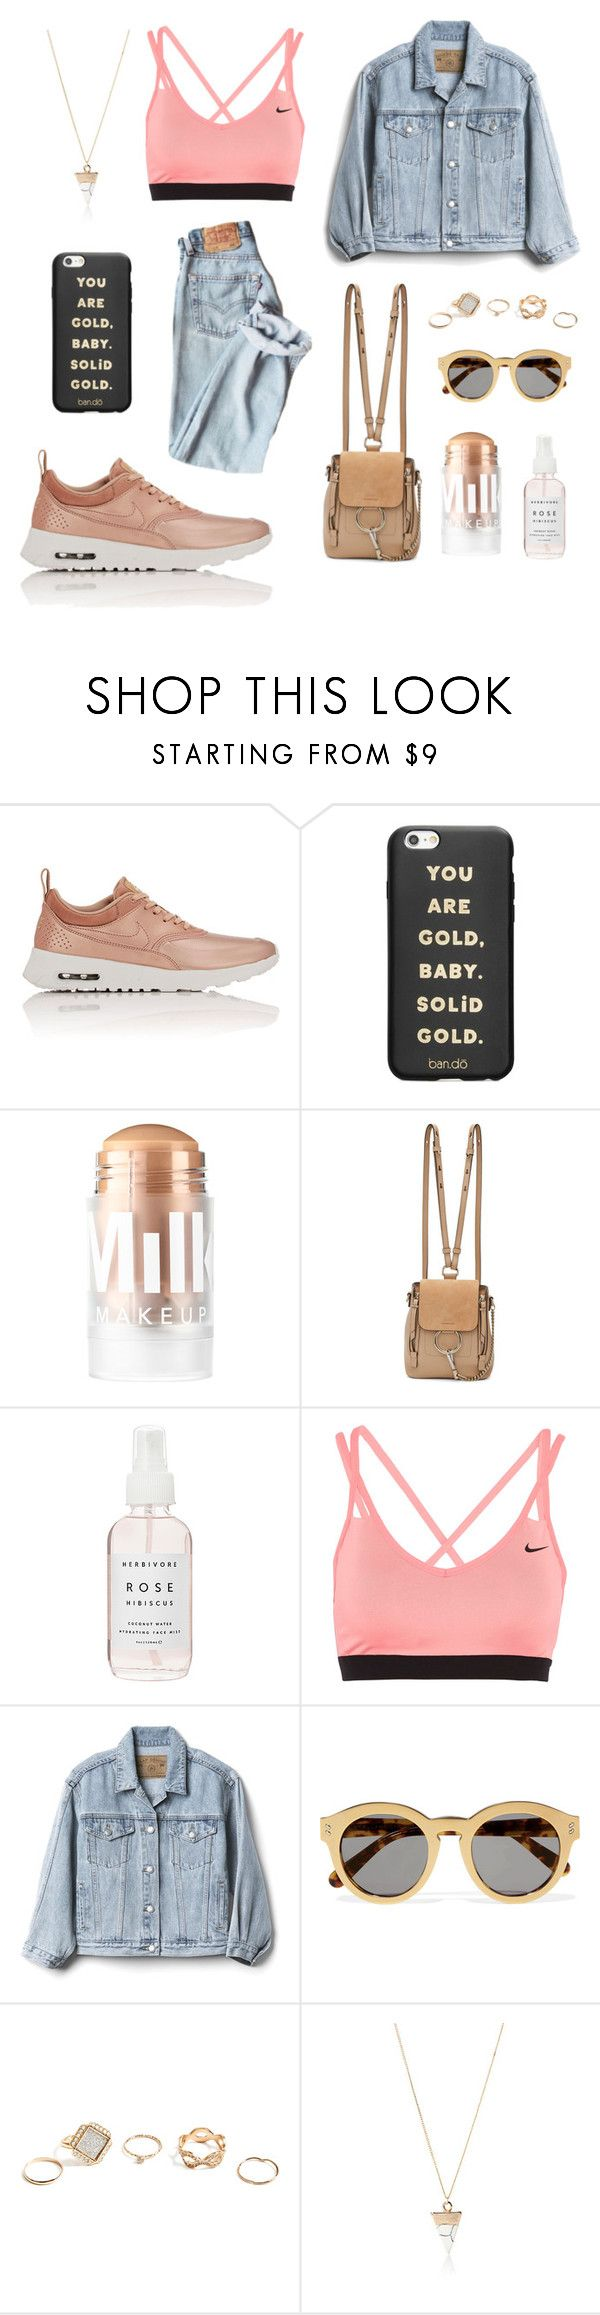 """street pink"" by lanagur on Polyvore featuring мода, NIKE, ban.do, MILK MAKEUP, Chloé, Herbivore, Gap, STELLA McCARTNEY, GUESS и Simons"